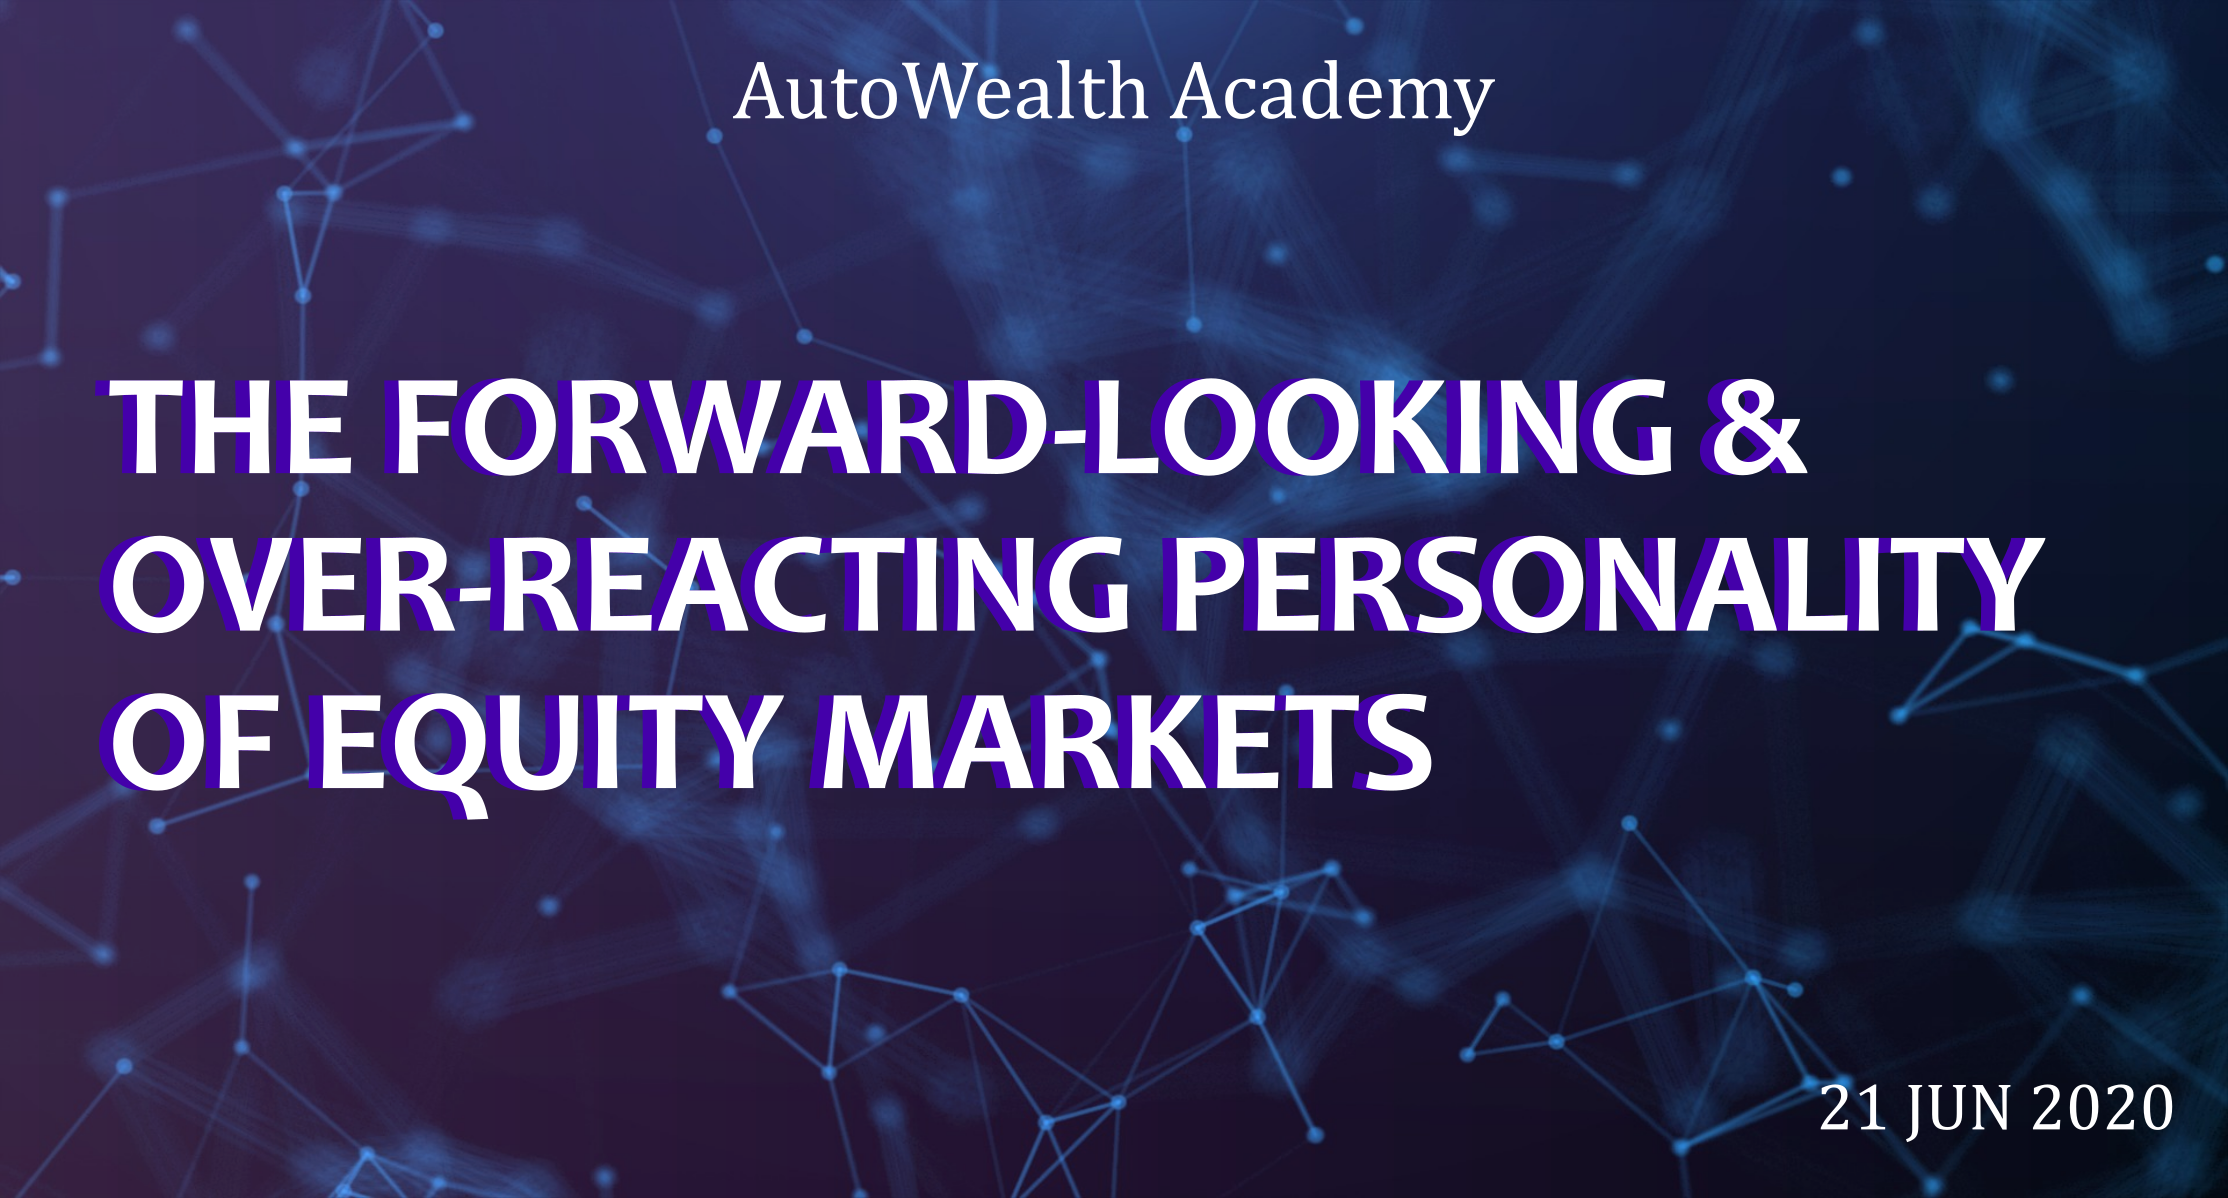 Equity Market's Forward-Looking & Over-Reacting Personality